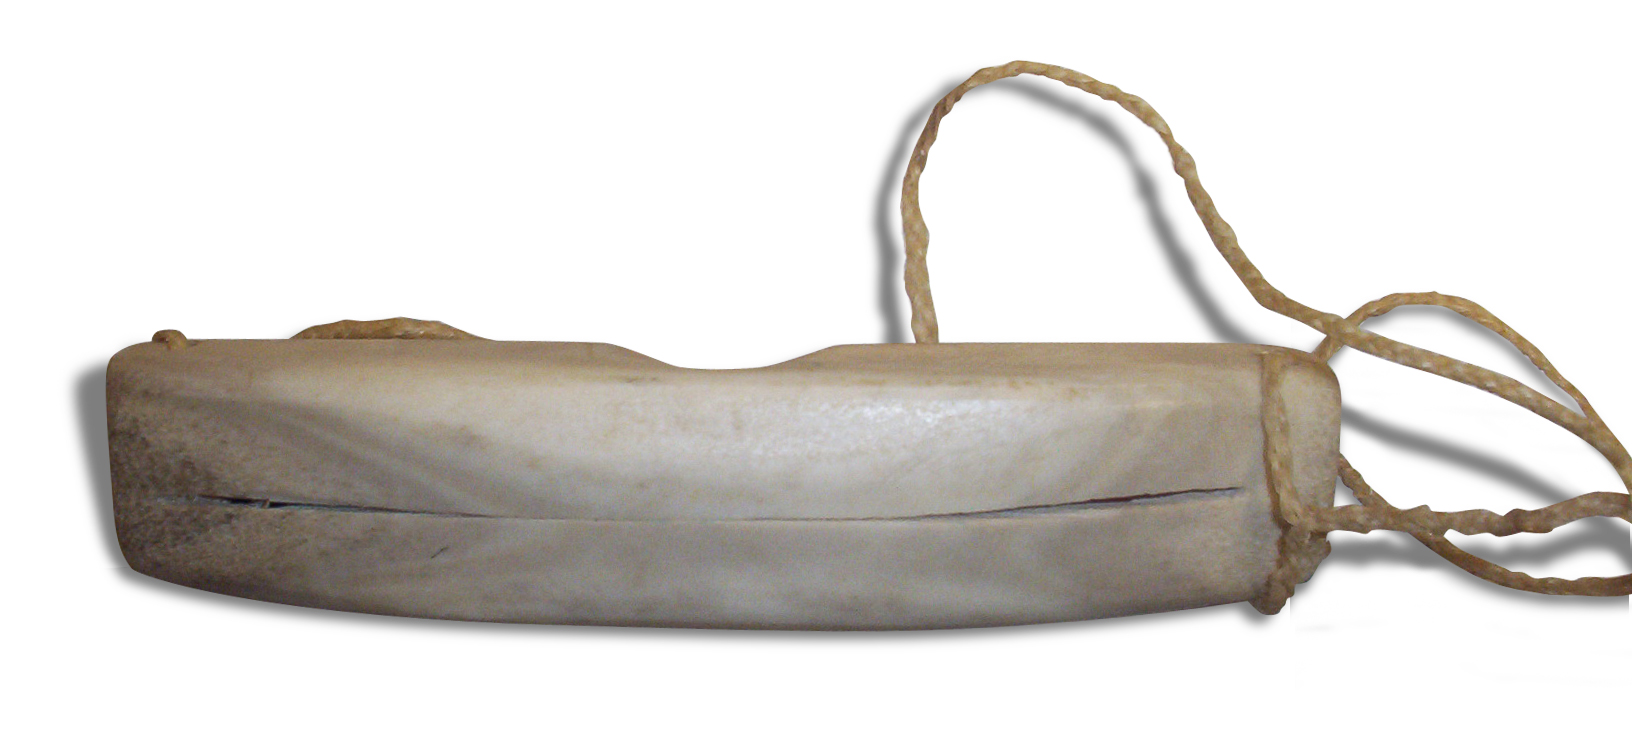 Traditional Inuit goggles. The narrow field of vision reduces glare to prevent snow blindness.